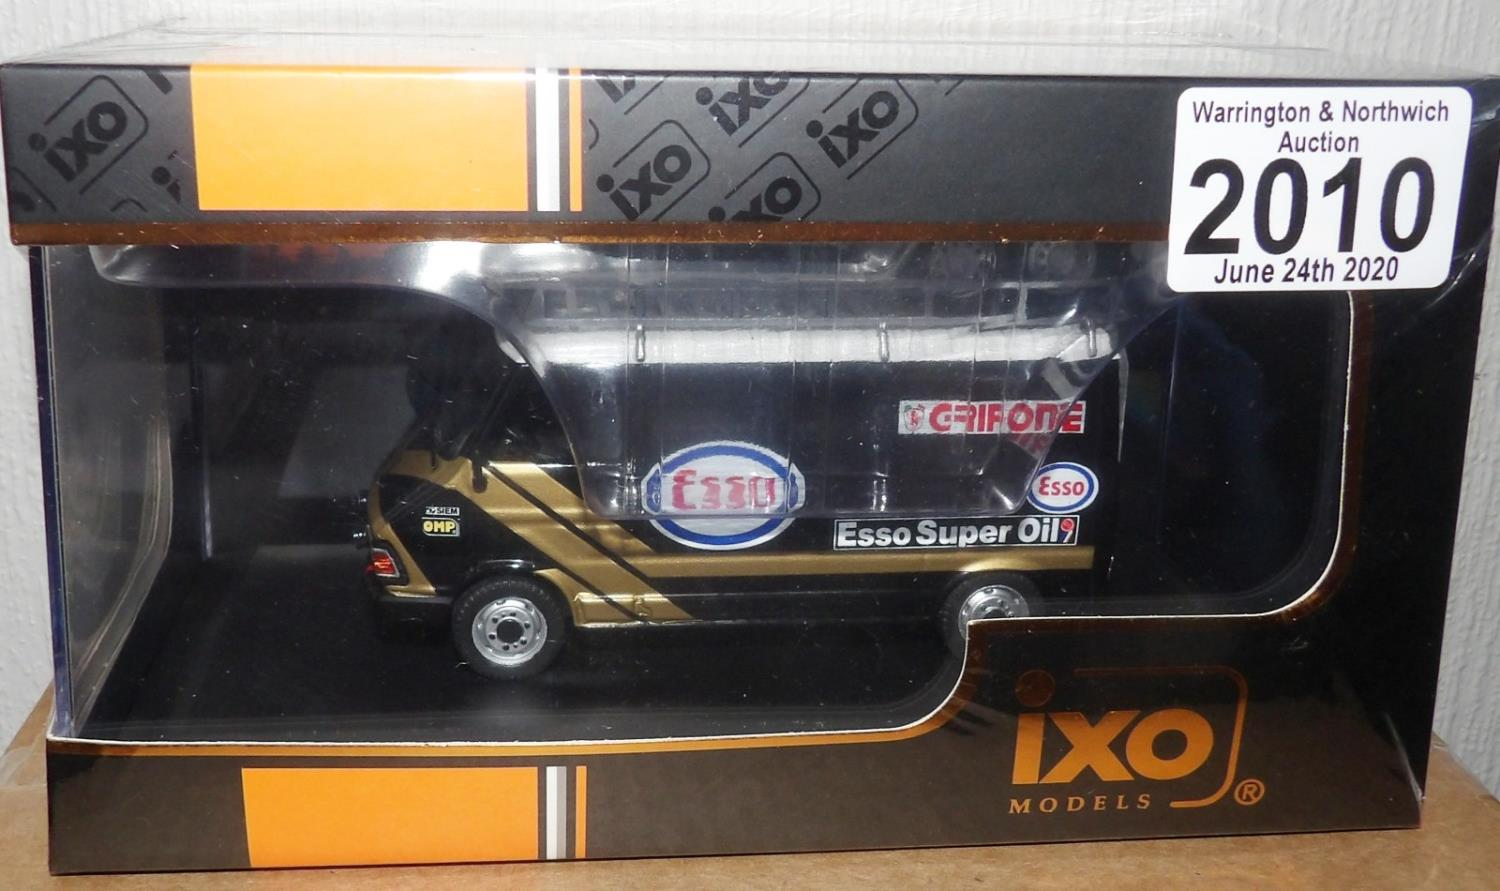 Lot 2010 - IXO 1.43 Scale FIAT 242 (Assistance ESSO Grifone) 1986. P&P Group 1 (£14+VAT for the first lot